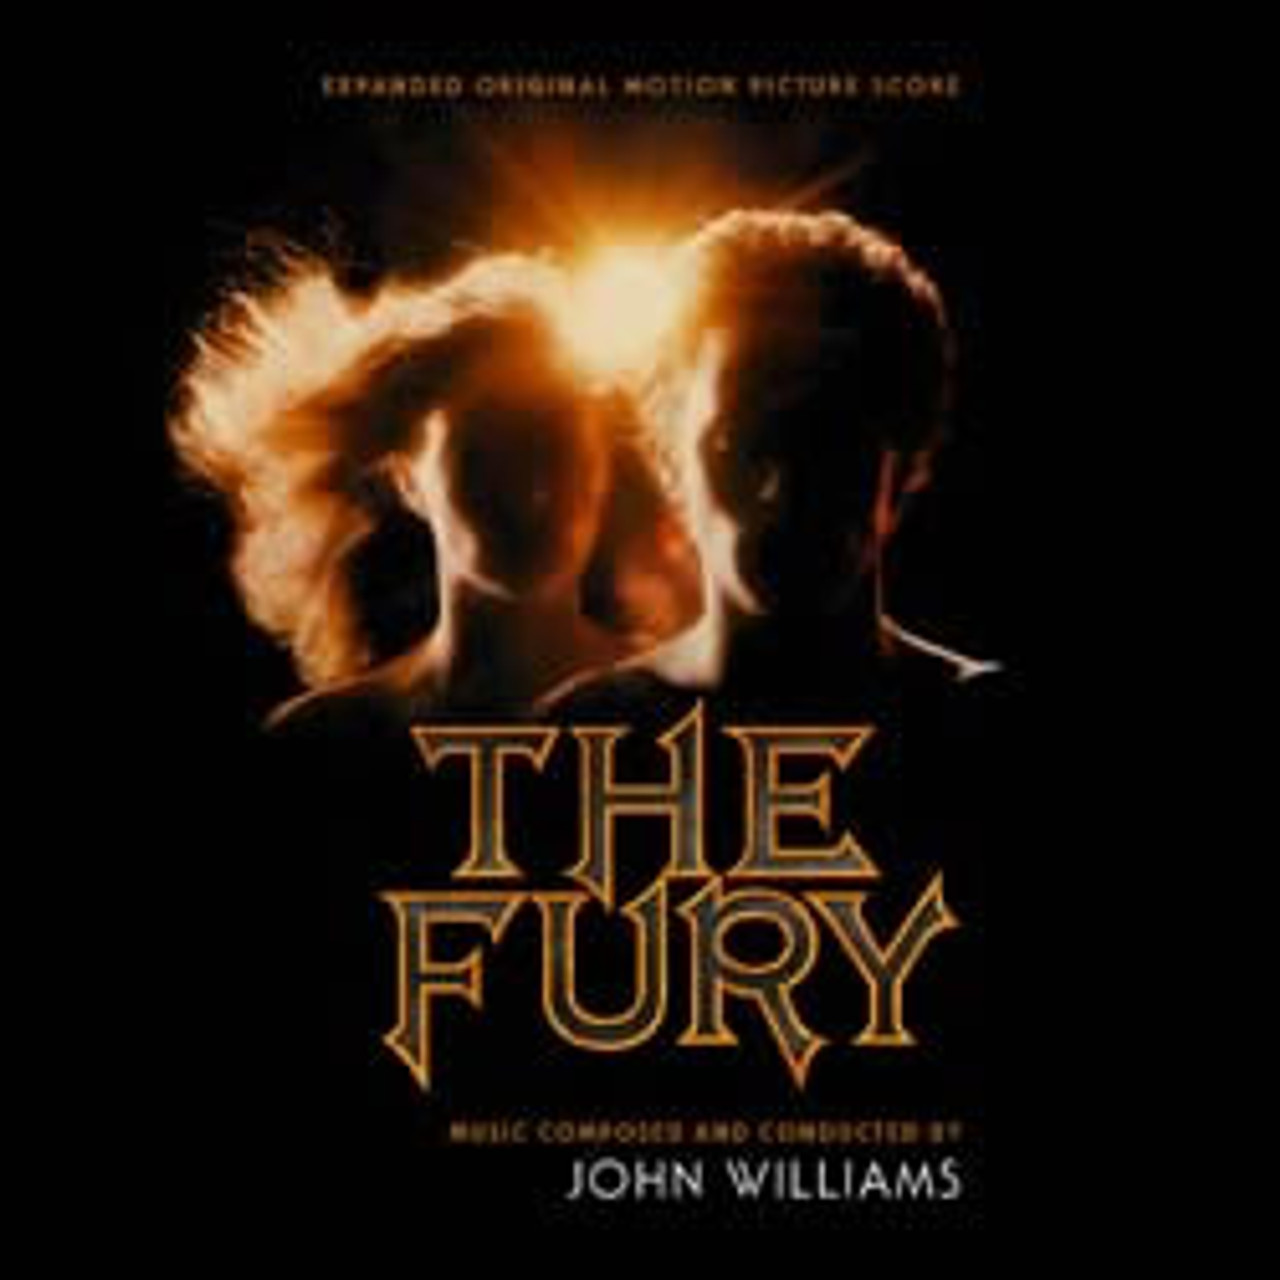 FURY, THE: LIMITED EDITION (2-CD SET)